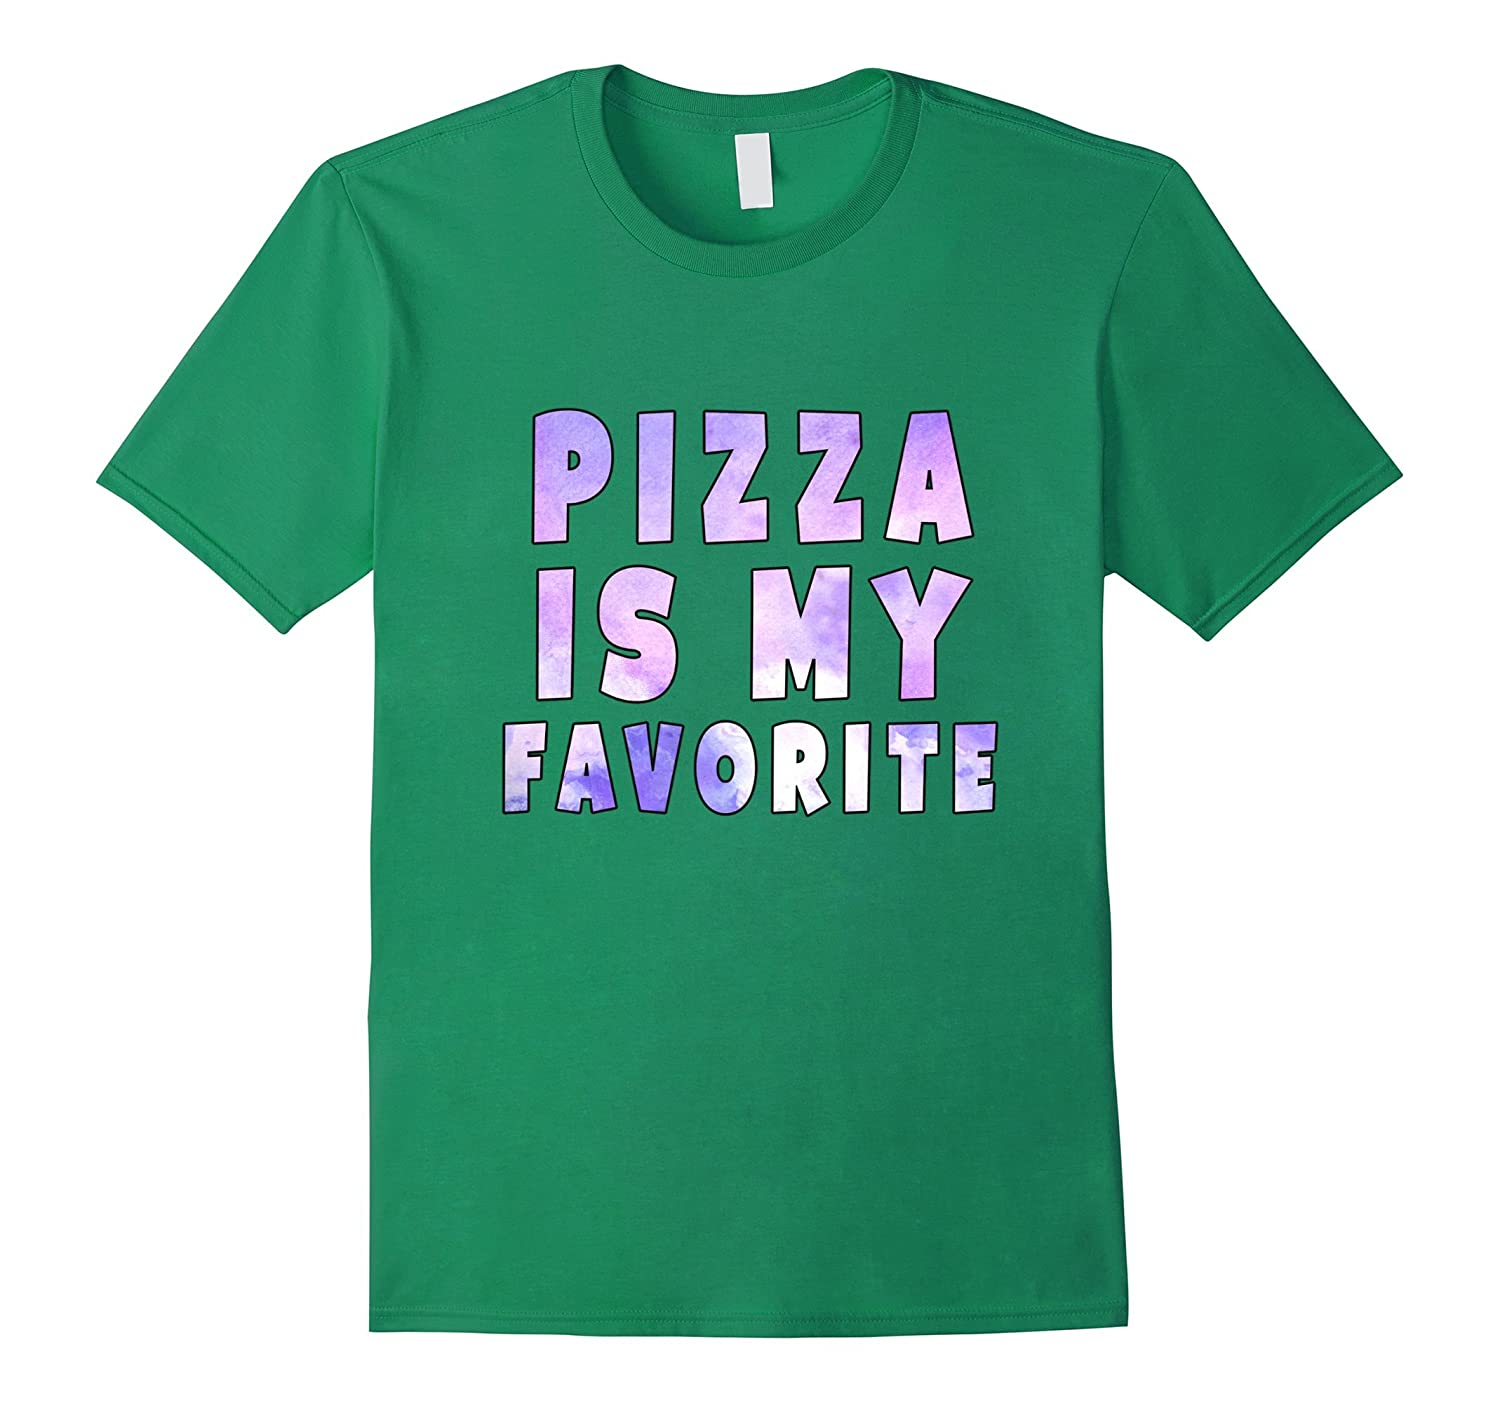 Pizza is my favorite shirt-Vaci